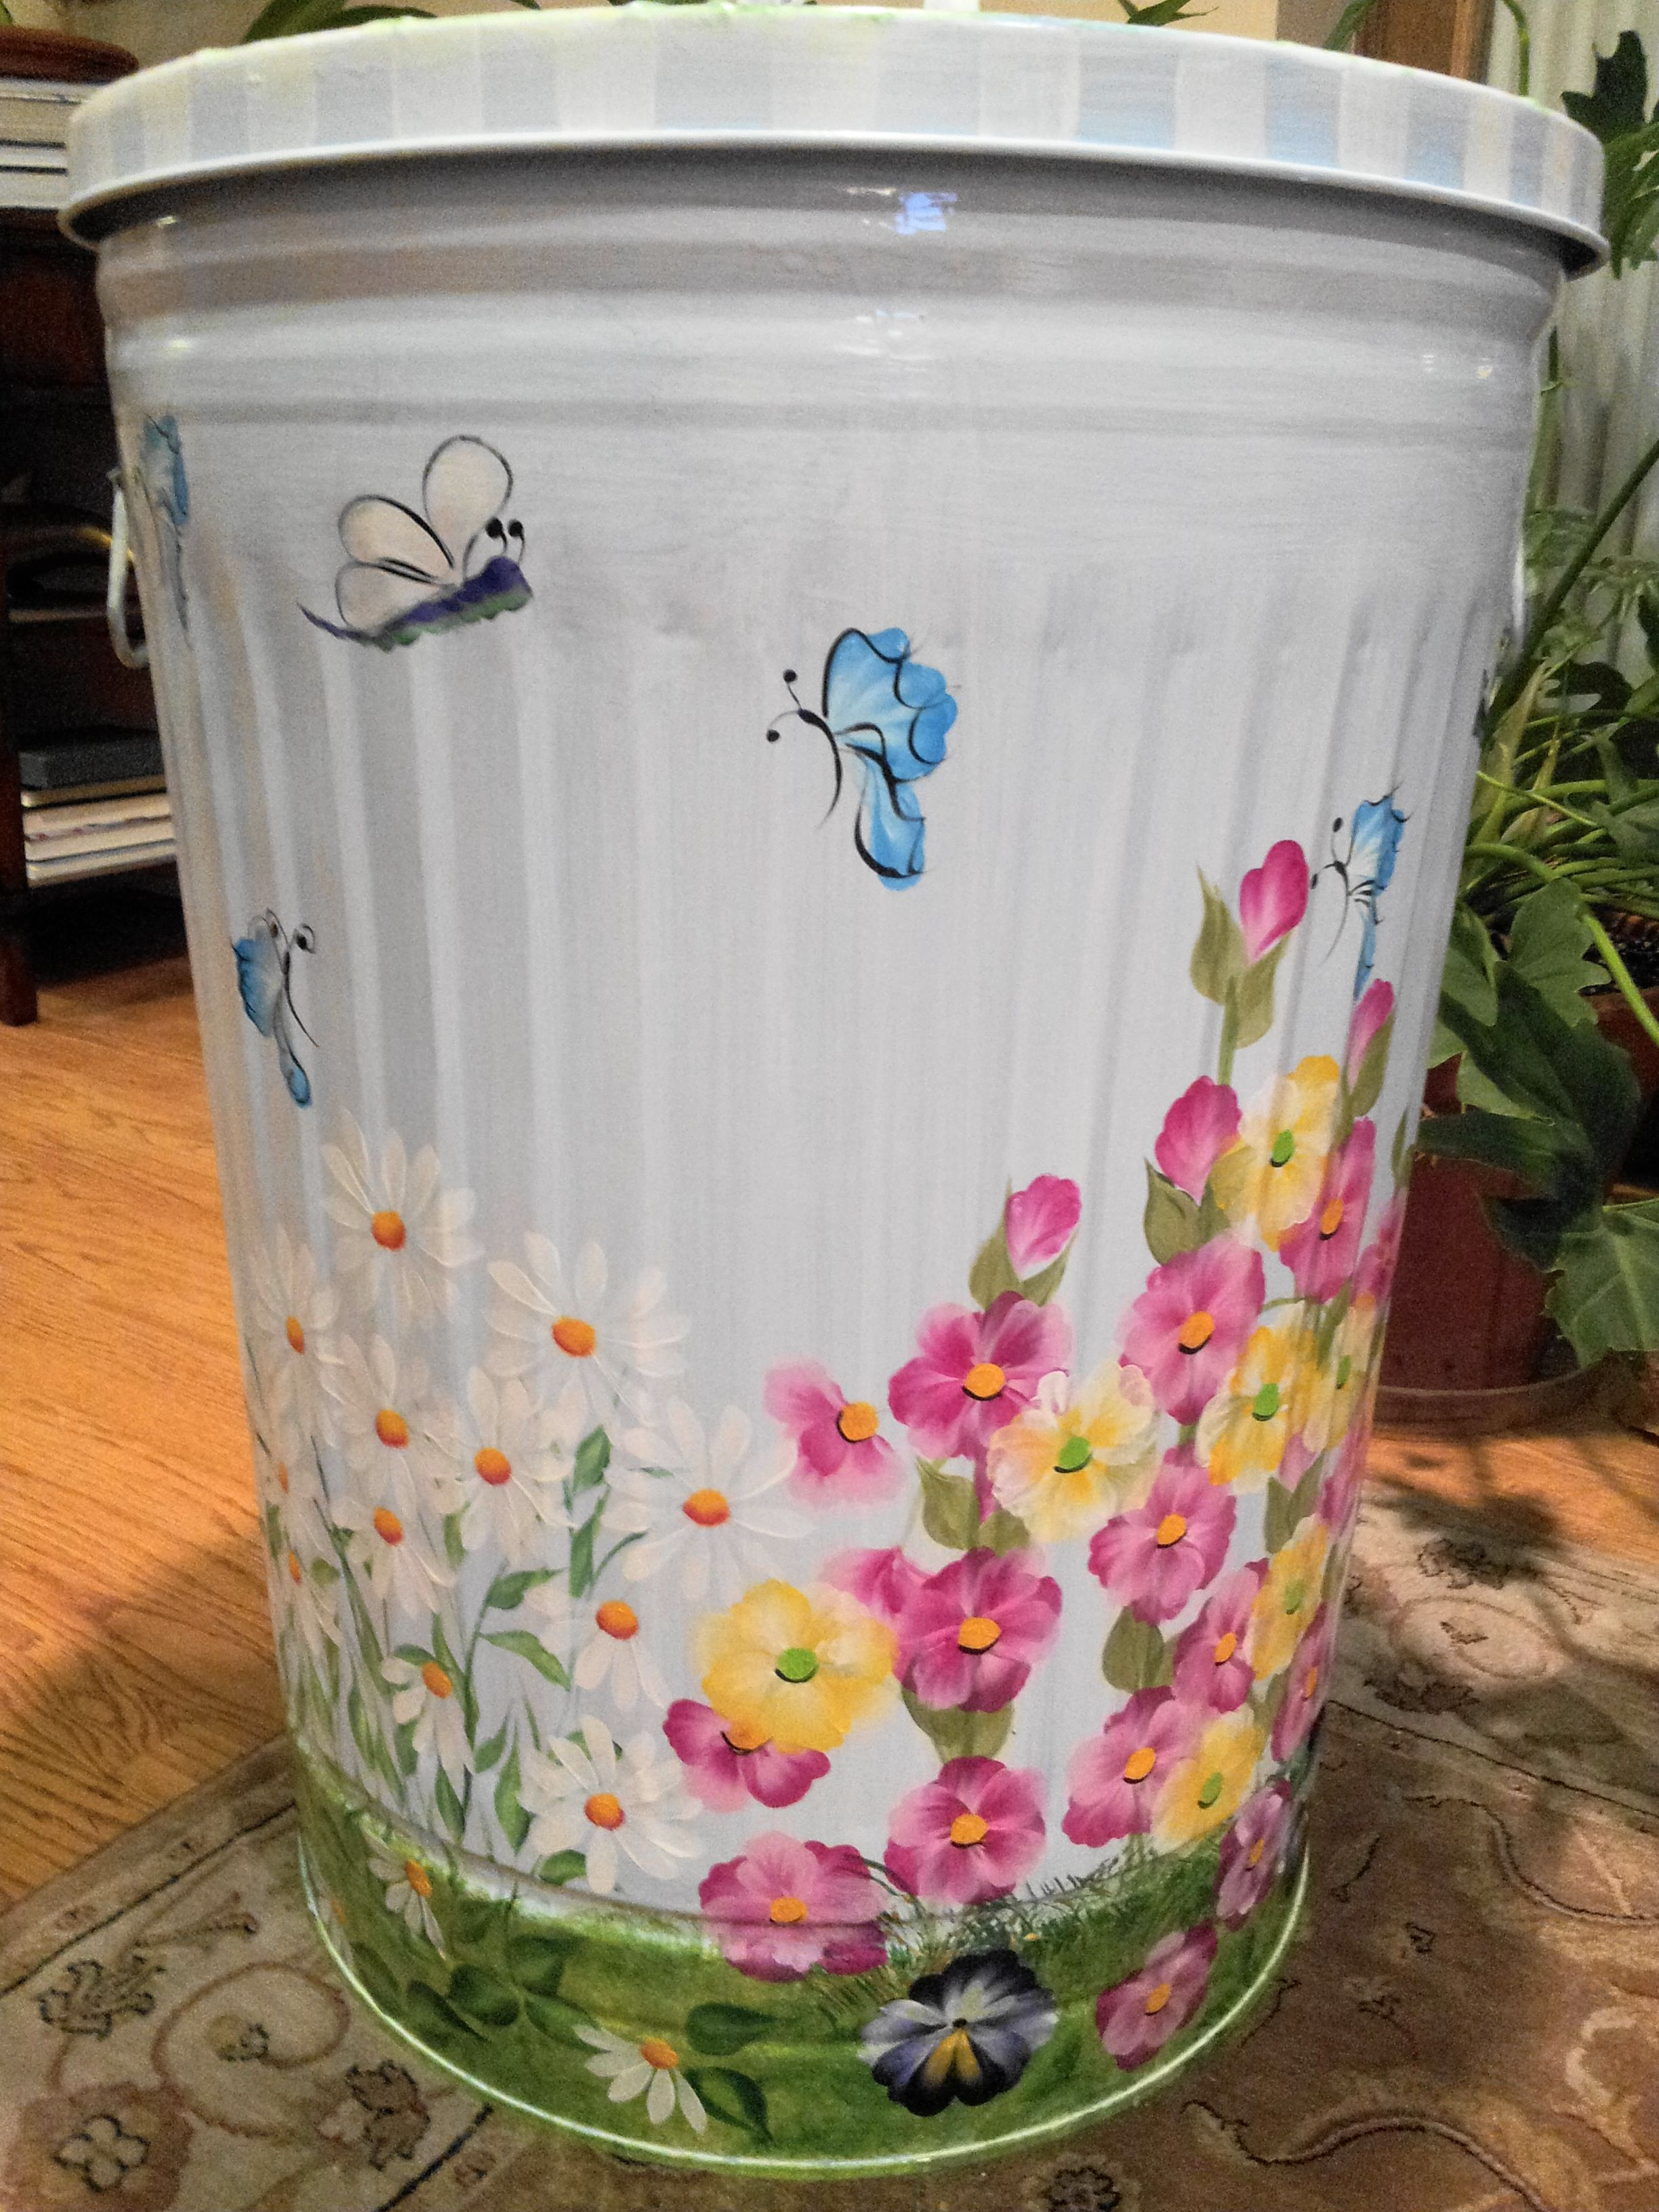 30 gallon hand painted trash can etsy